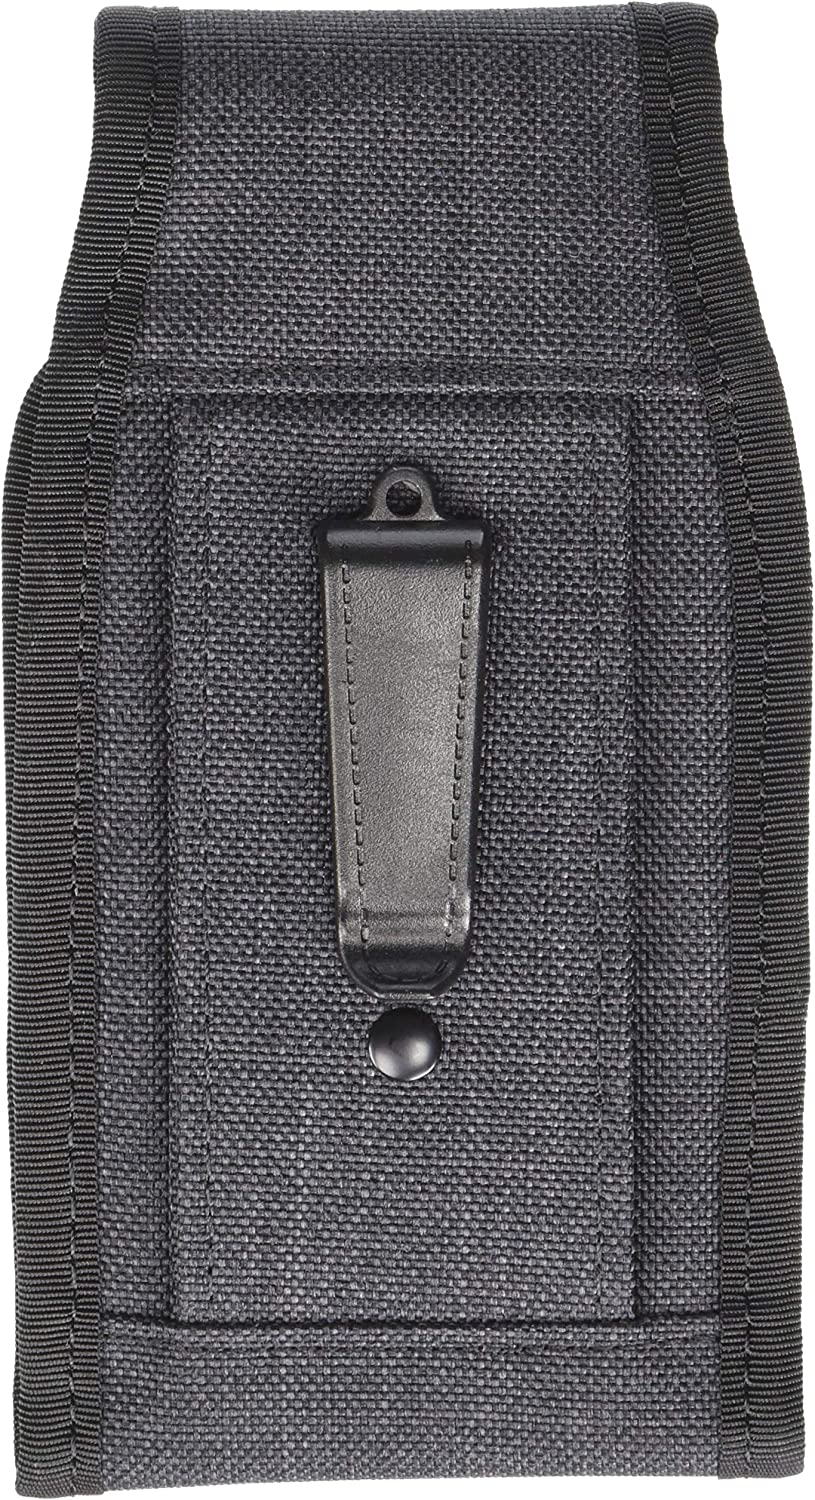 Chums Holster 2 Case